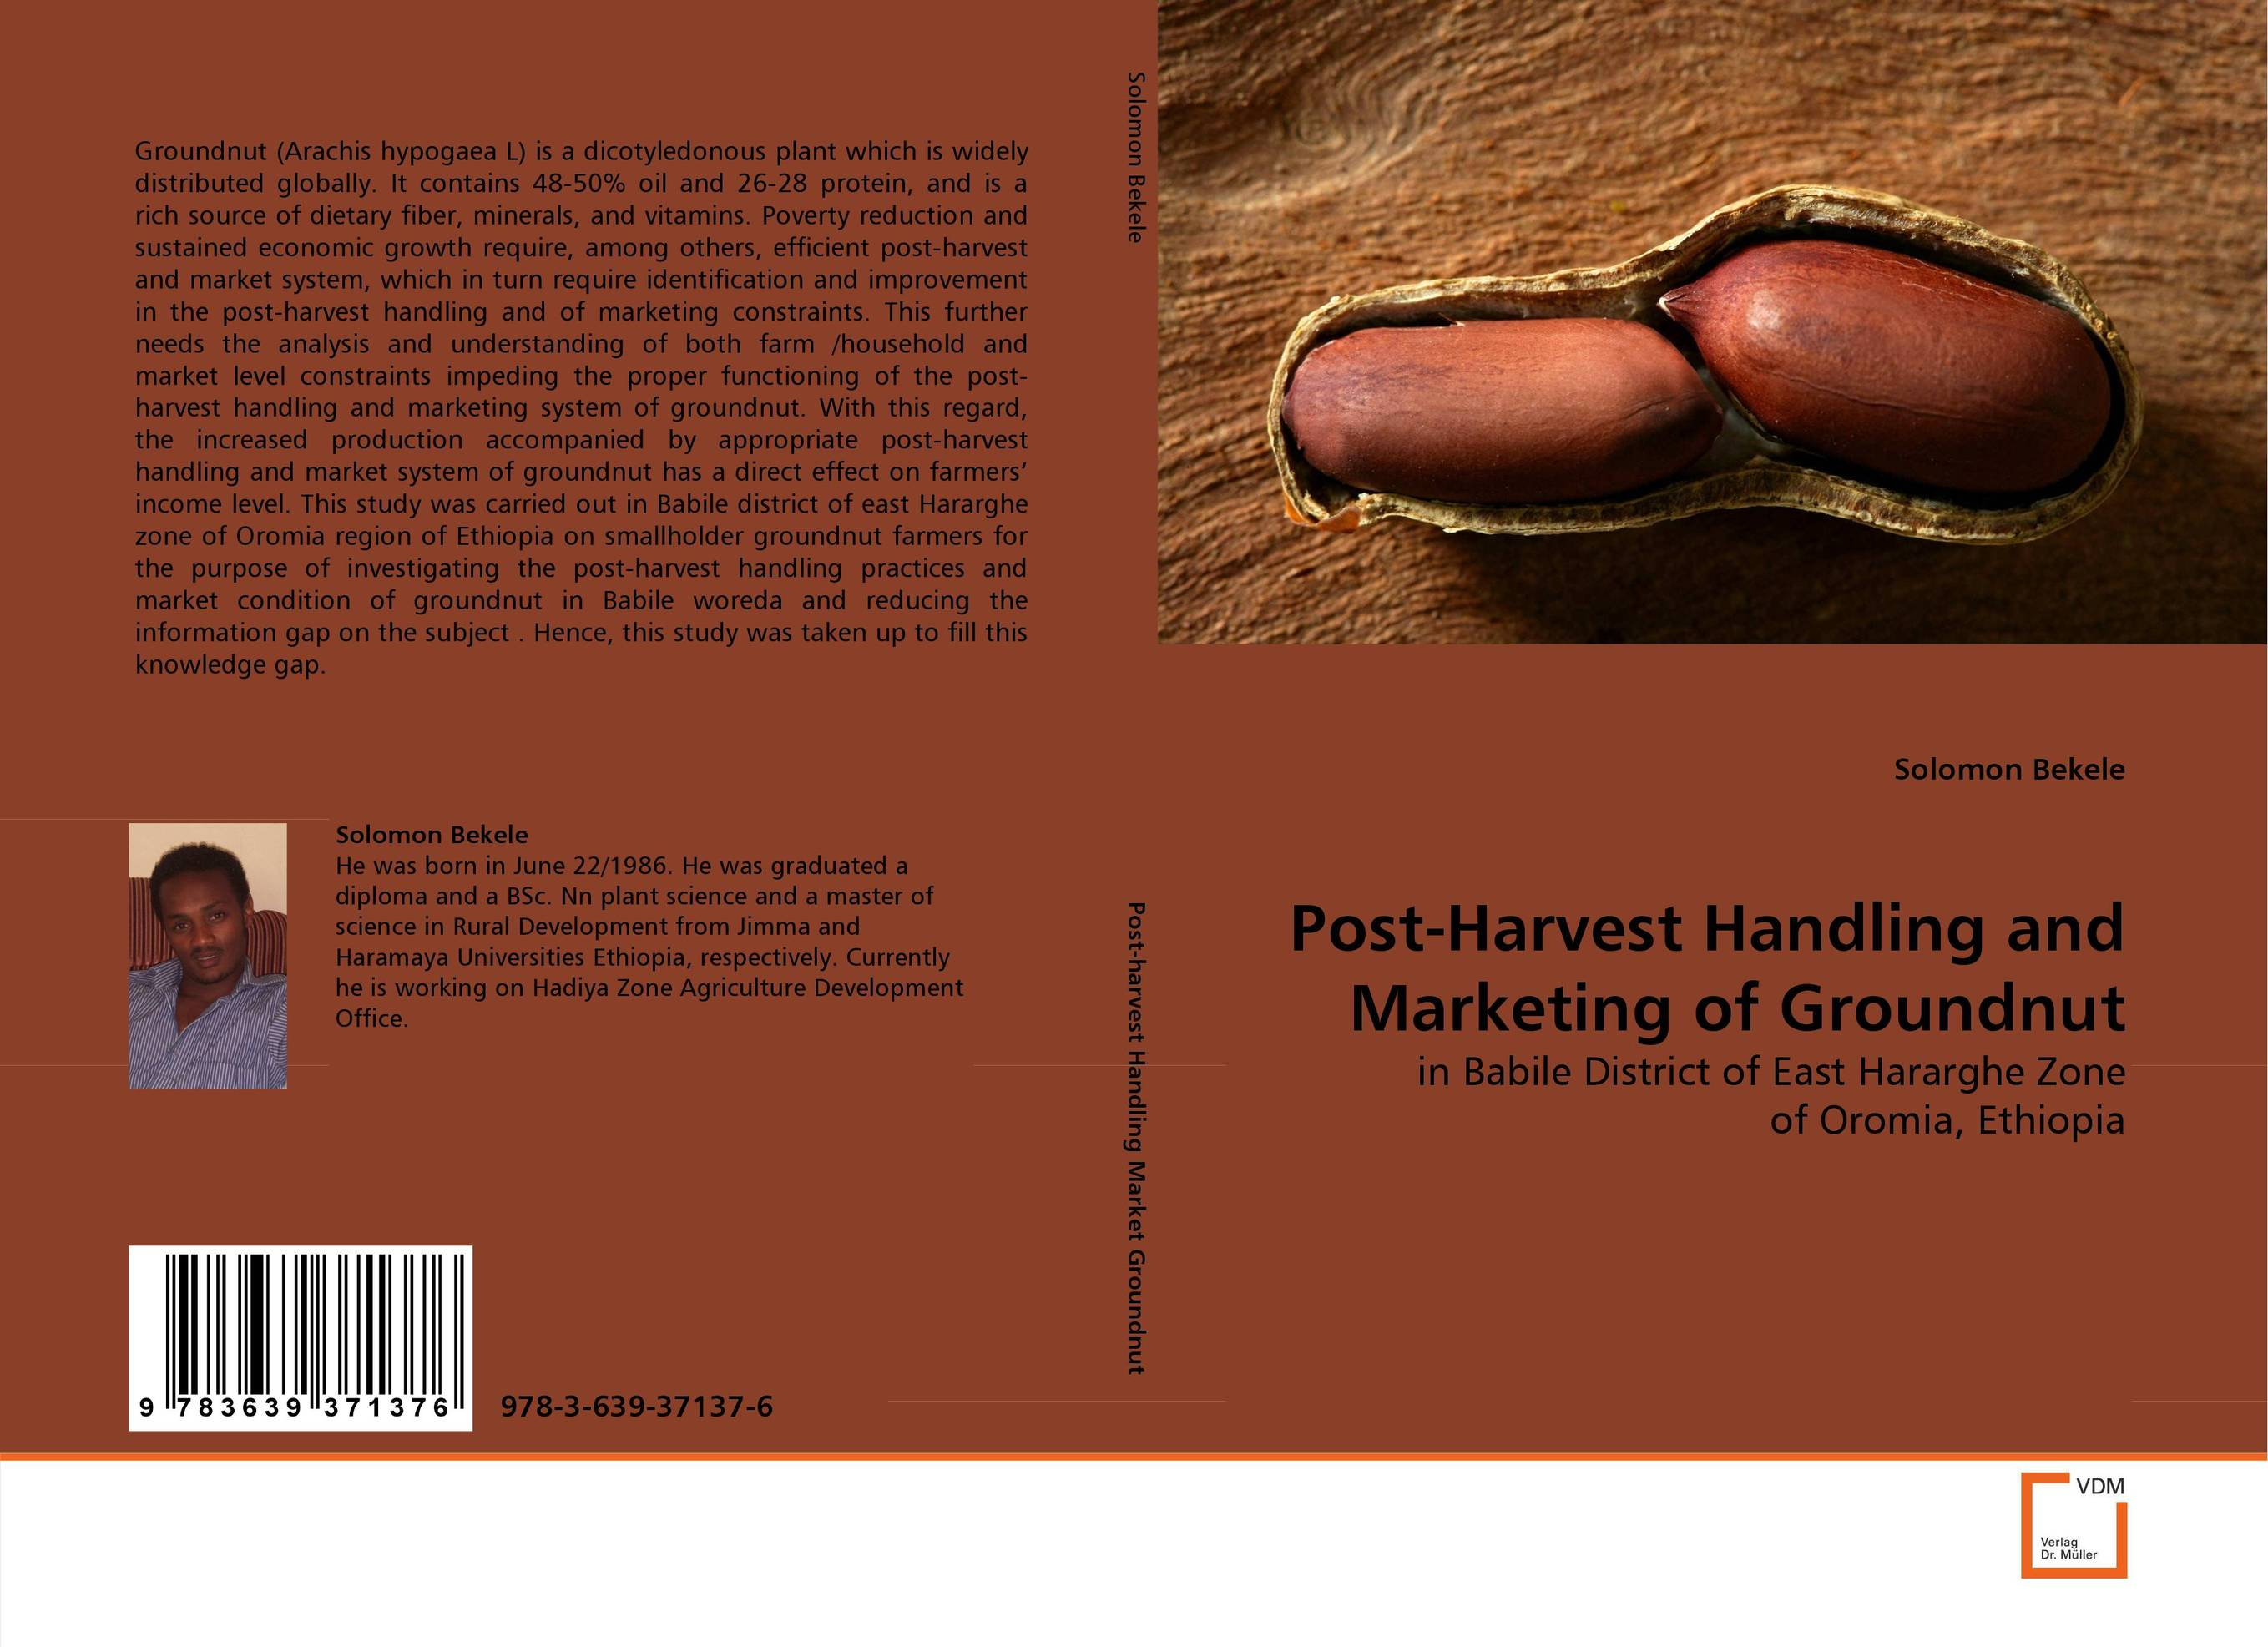 Post-Harvest Handling and Marketing of Groundnut